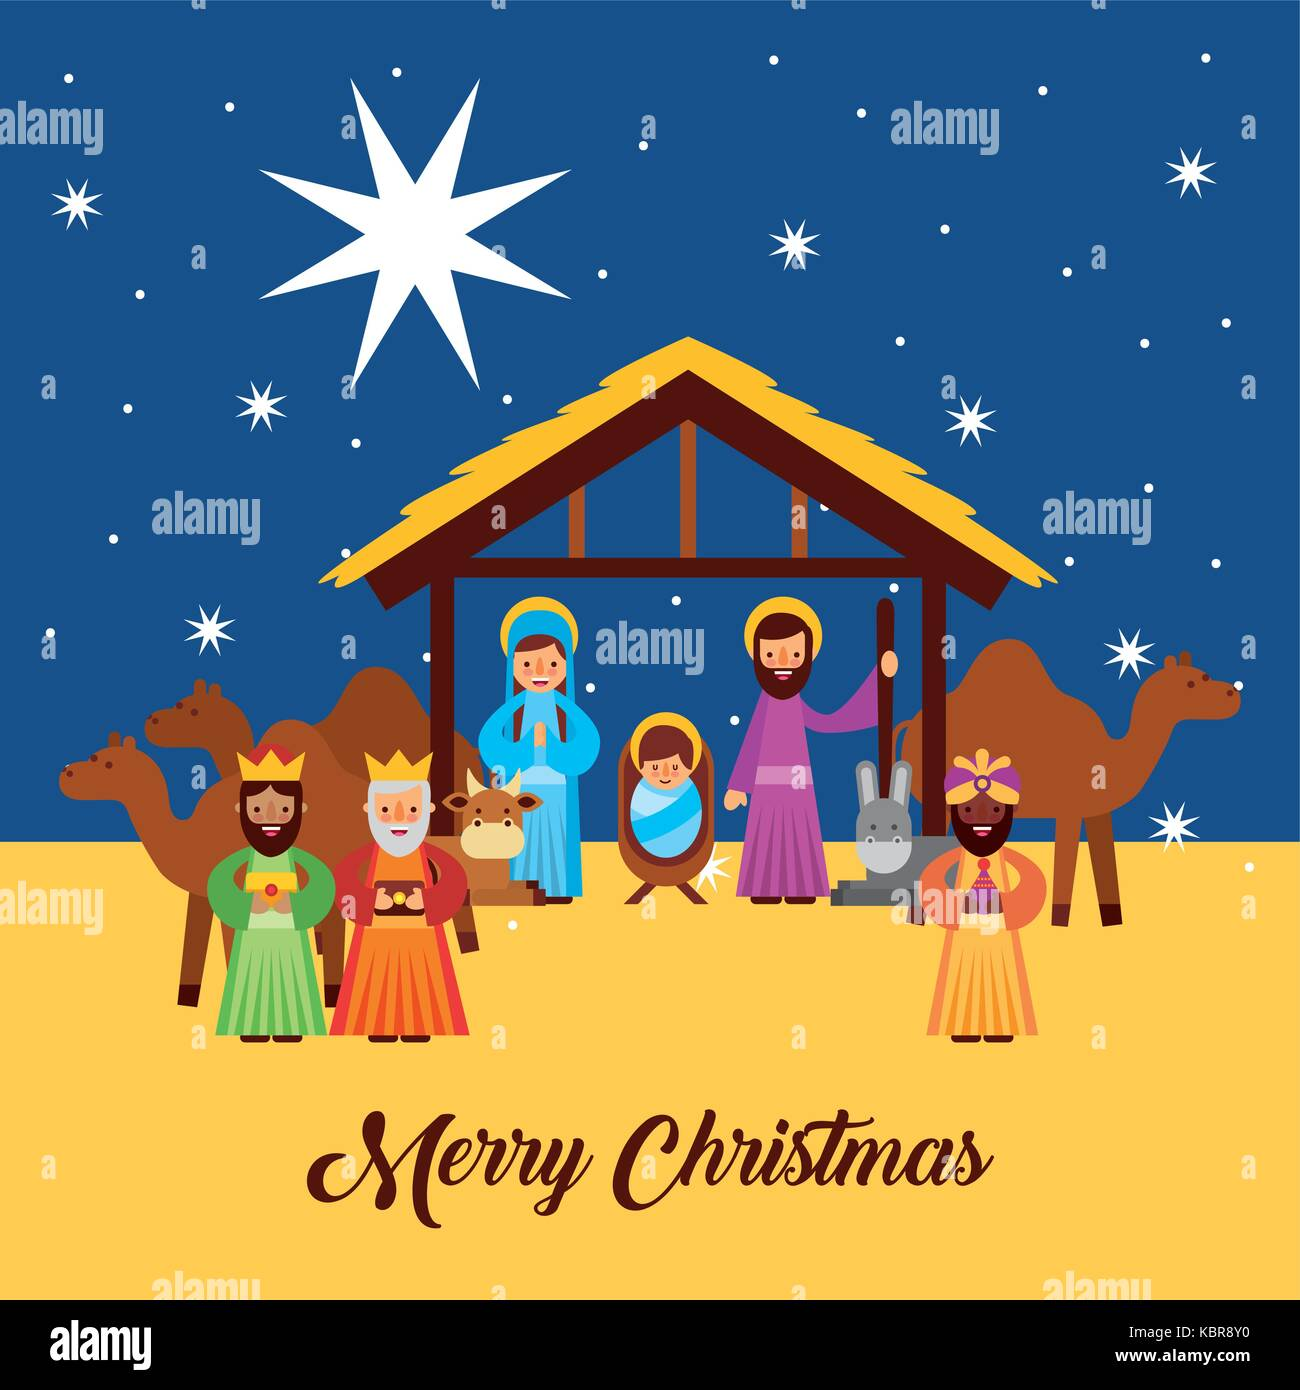 merry christmas greetings with jesus born in manger joseph and mary ...